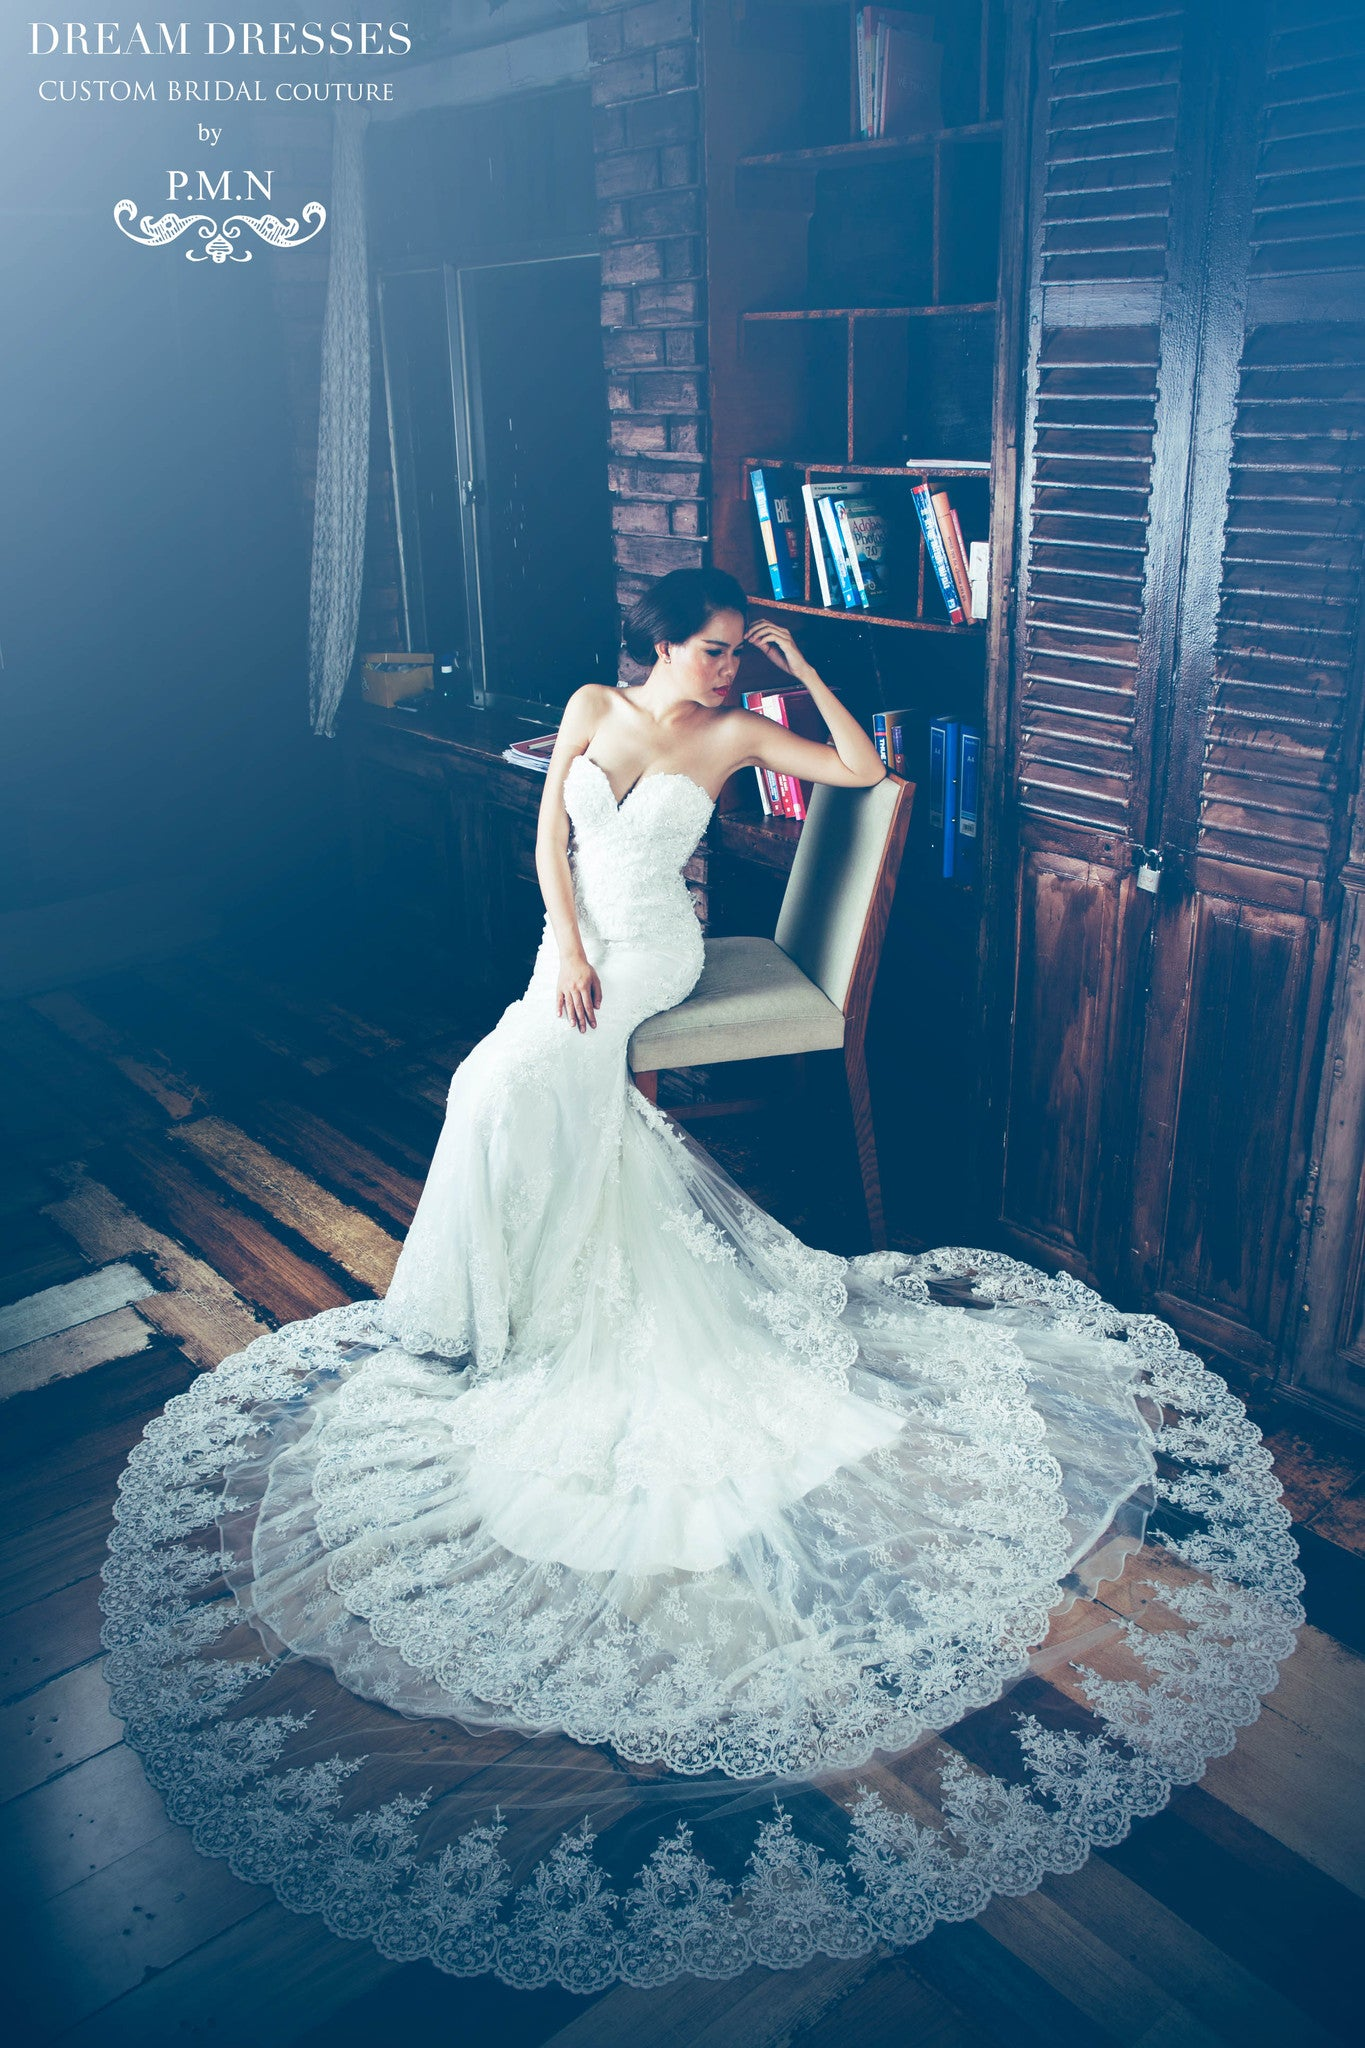 SAMPLE SALE/ Sweetheart Strapless Wedding Dress with Three Layer Long Train (# PB094) - Dream Dresses by P.M.N  - 3